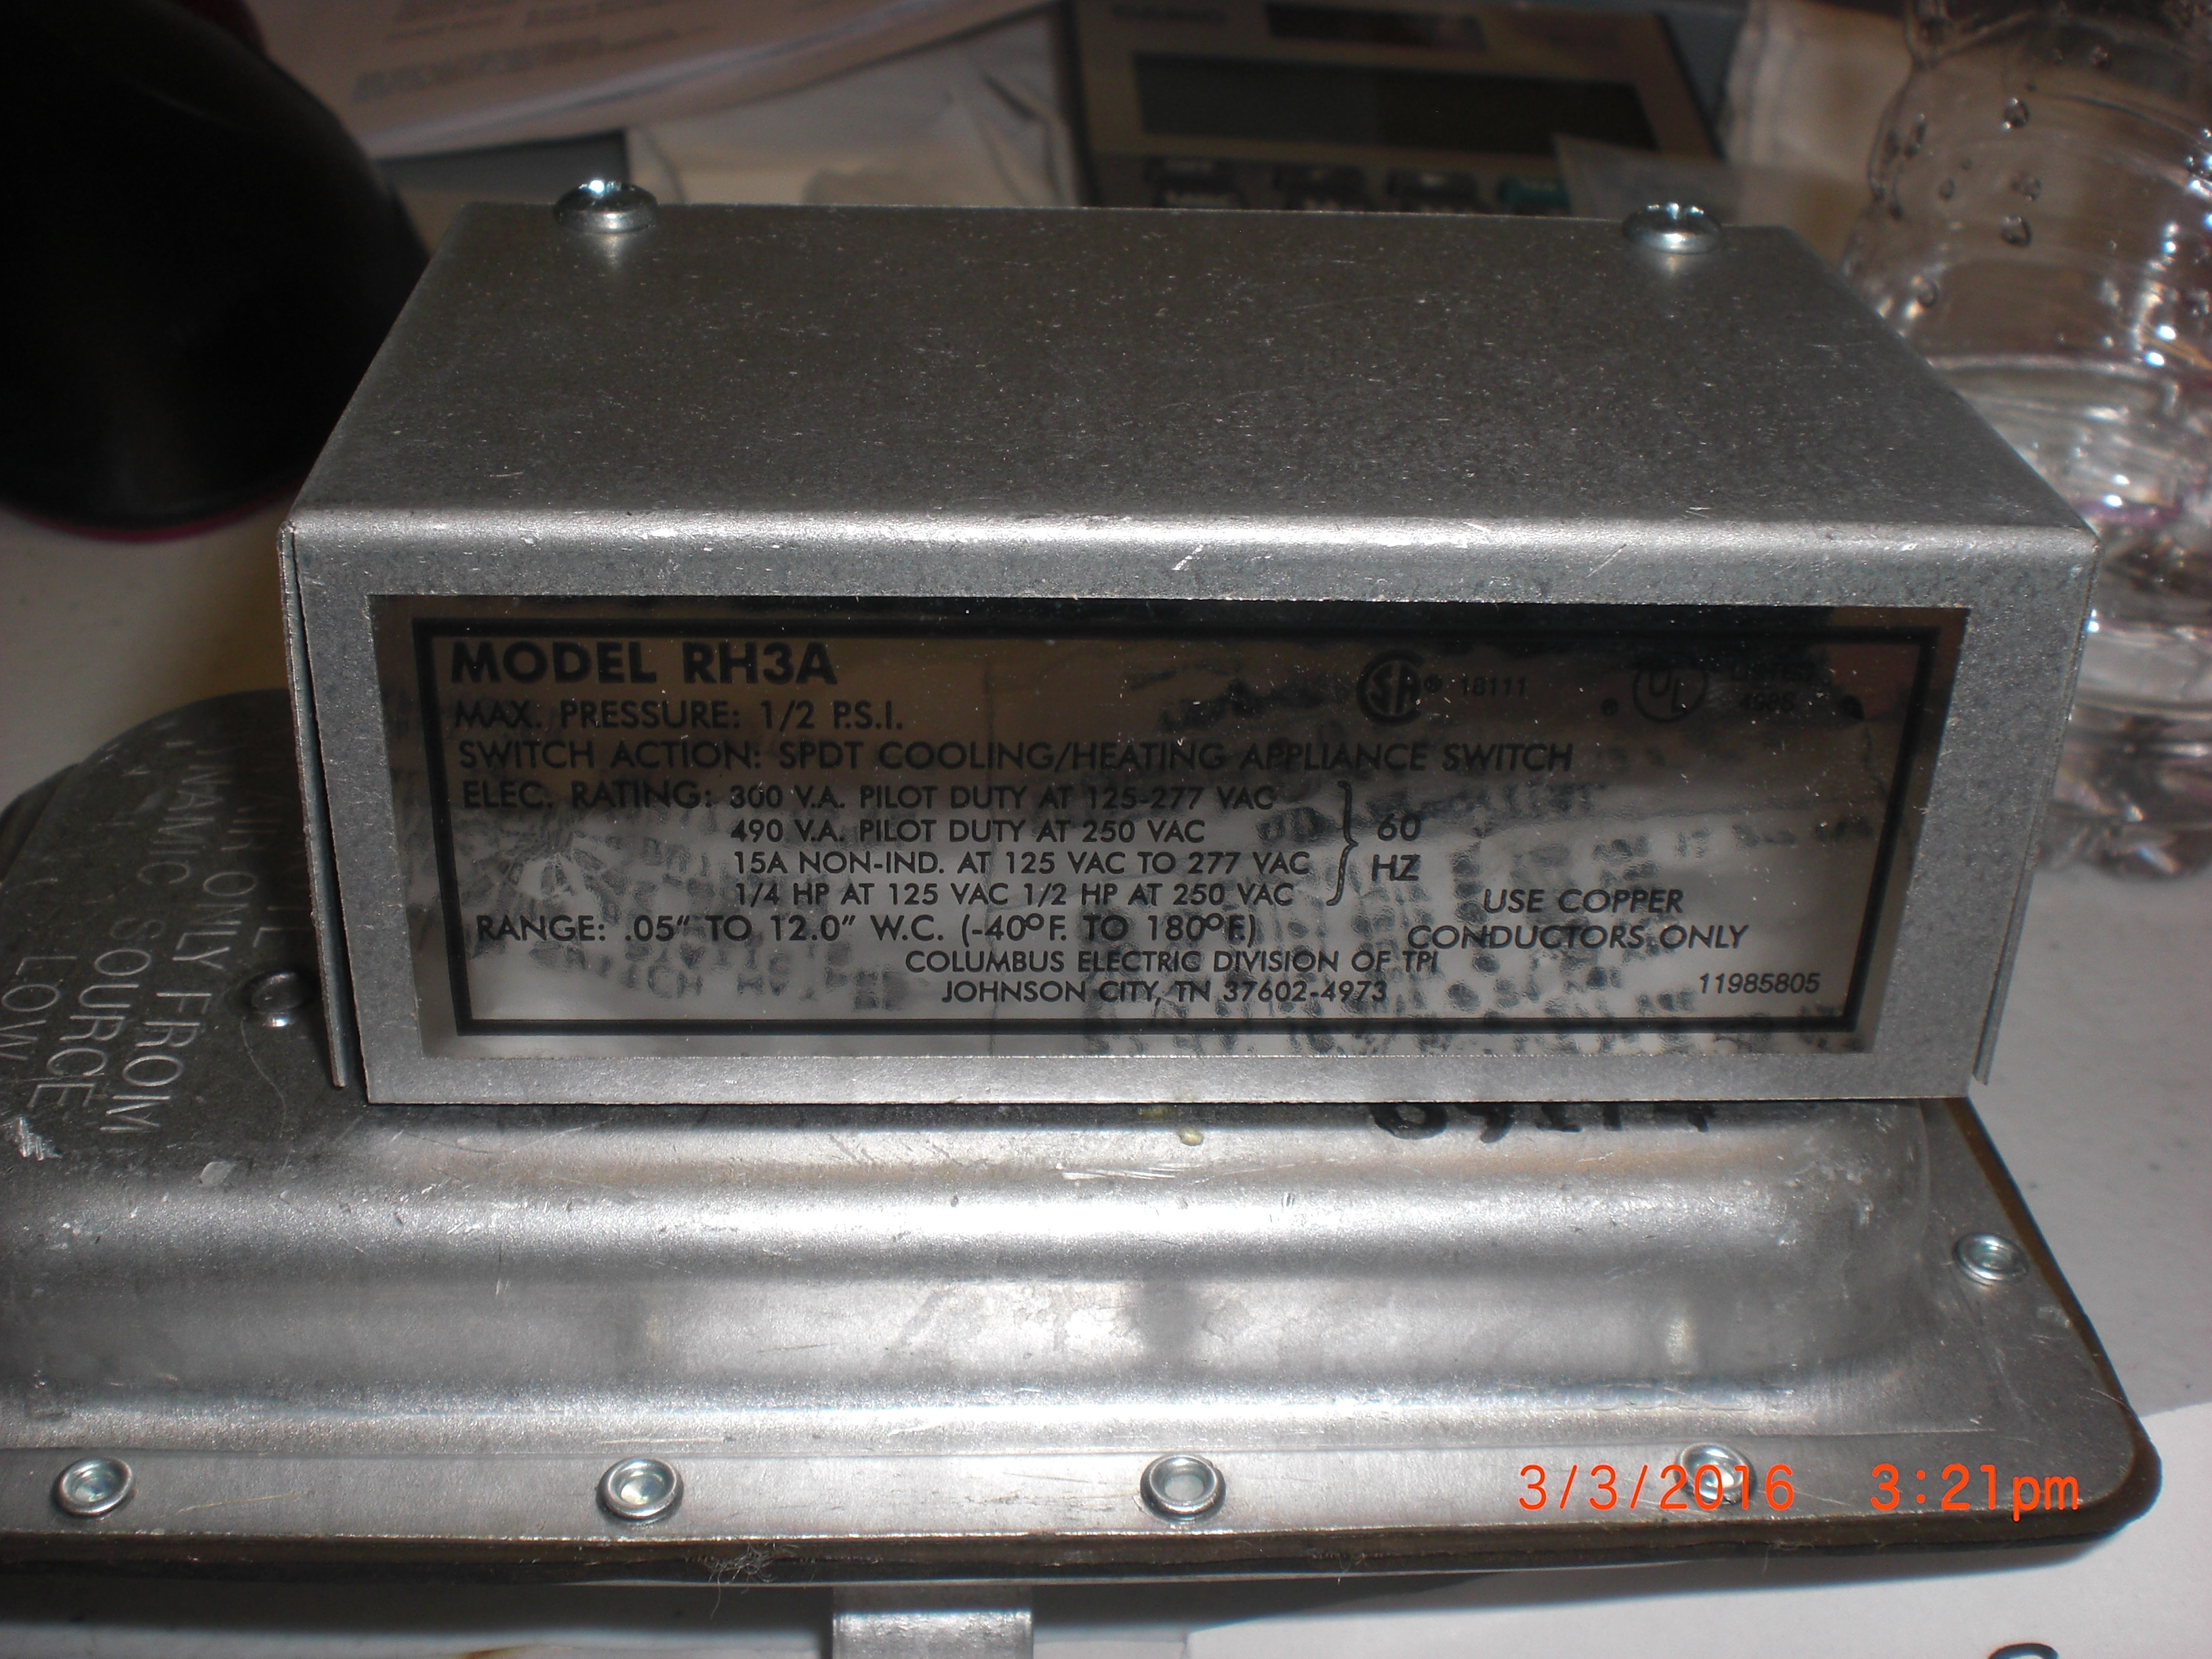 Switch Cooling / Heating Appliance   DWYER INSTRUMENTS RH3A SPTD